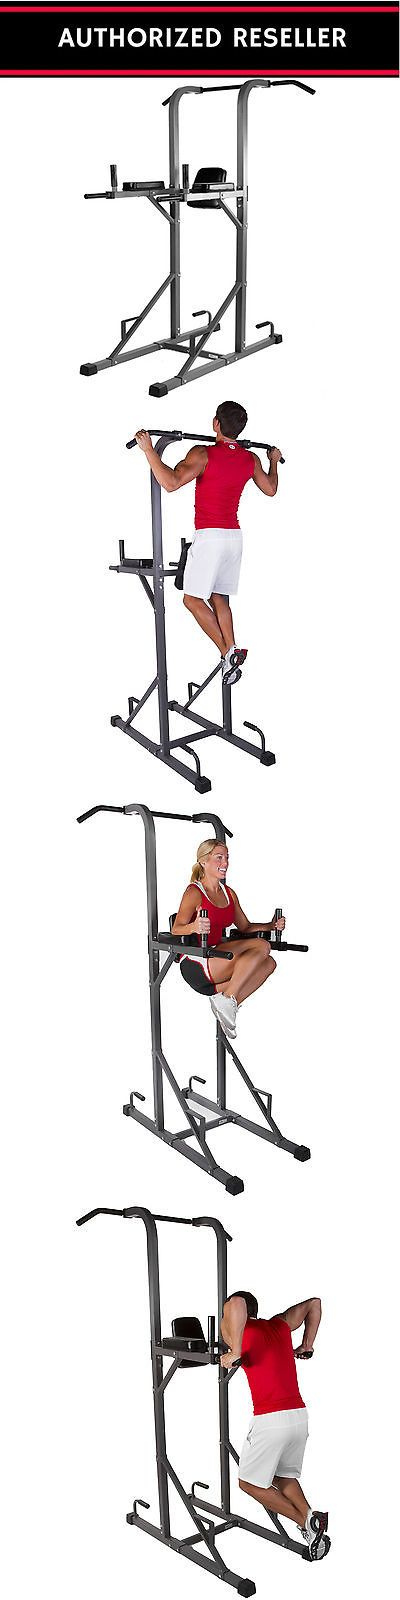 Home Gyms 158923: Xmark Fitness Power Tower With Dip Station Exercise Workout Pull Up Bar Xm-4434 BUY IT NOW ONLY: $158.0